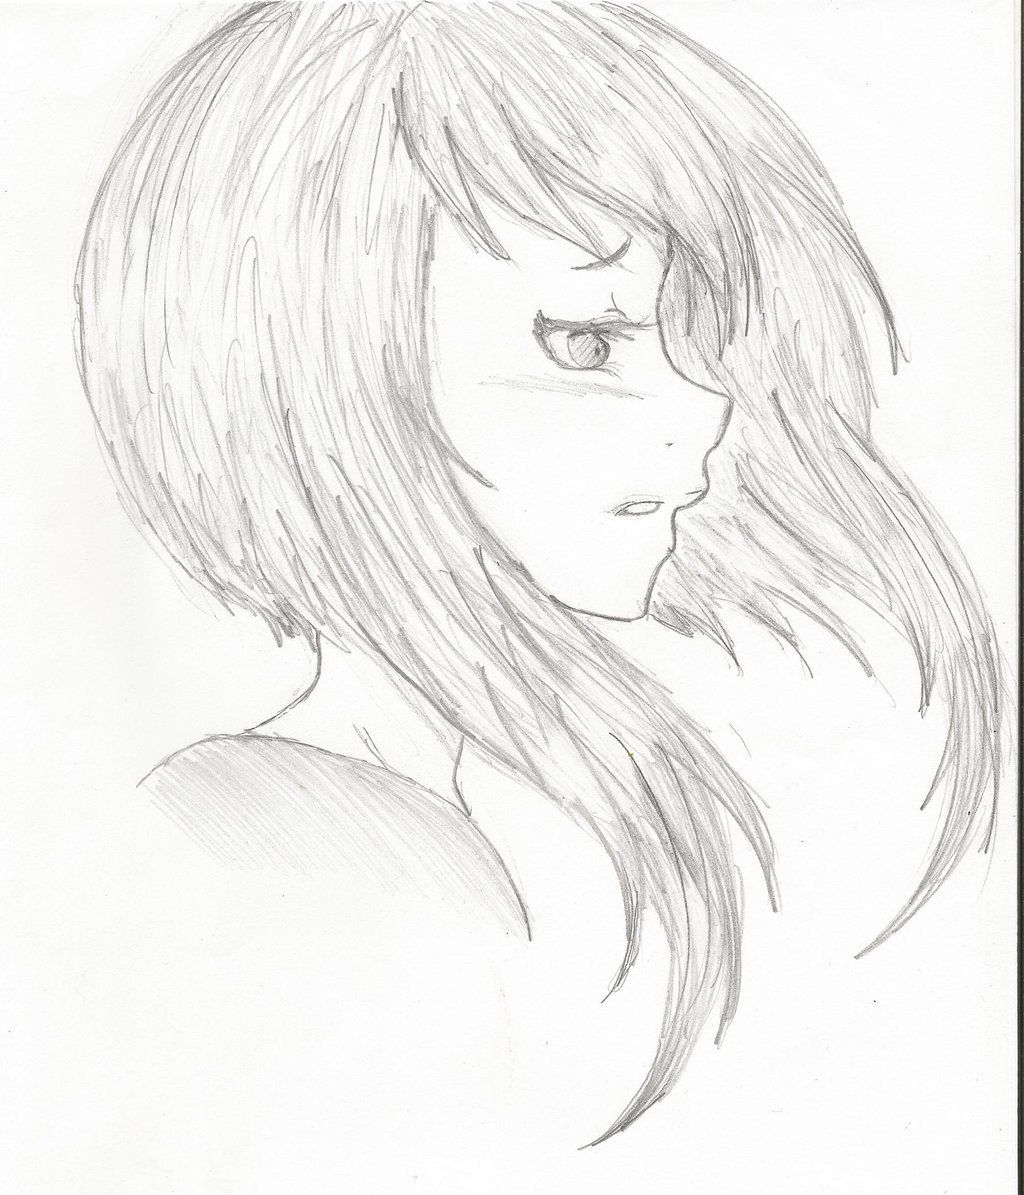 1024x1195 Girl Face Side View Drawing Girls Face Drawing Side View Anime Side View Girl Face Drawing Side View Of Face